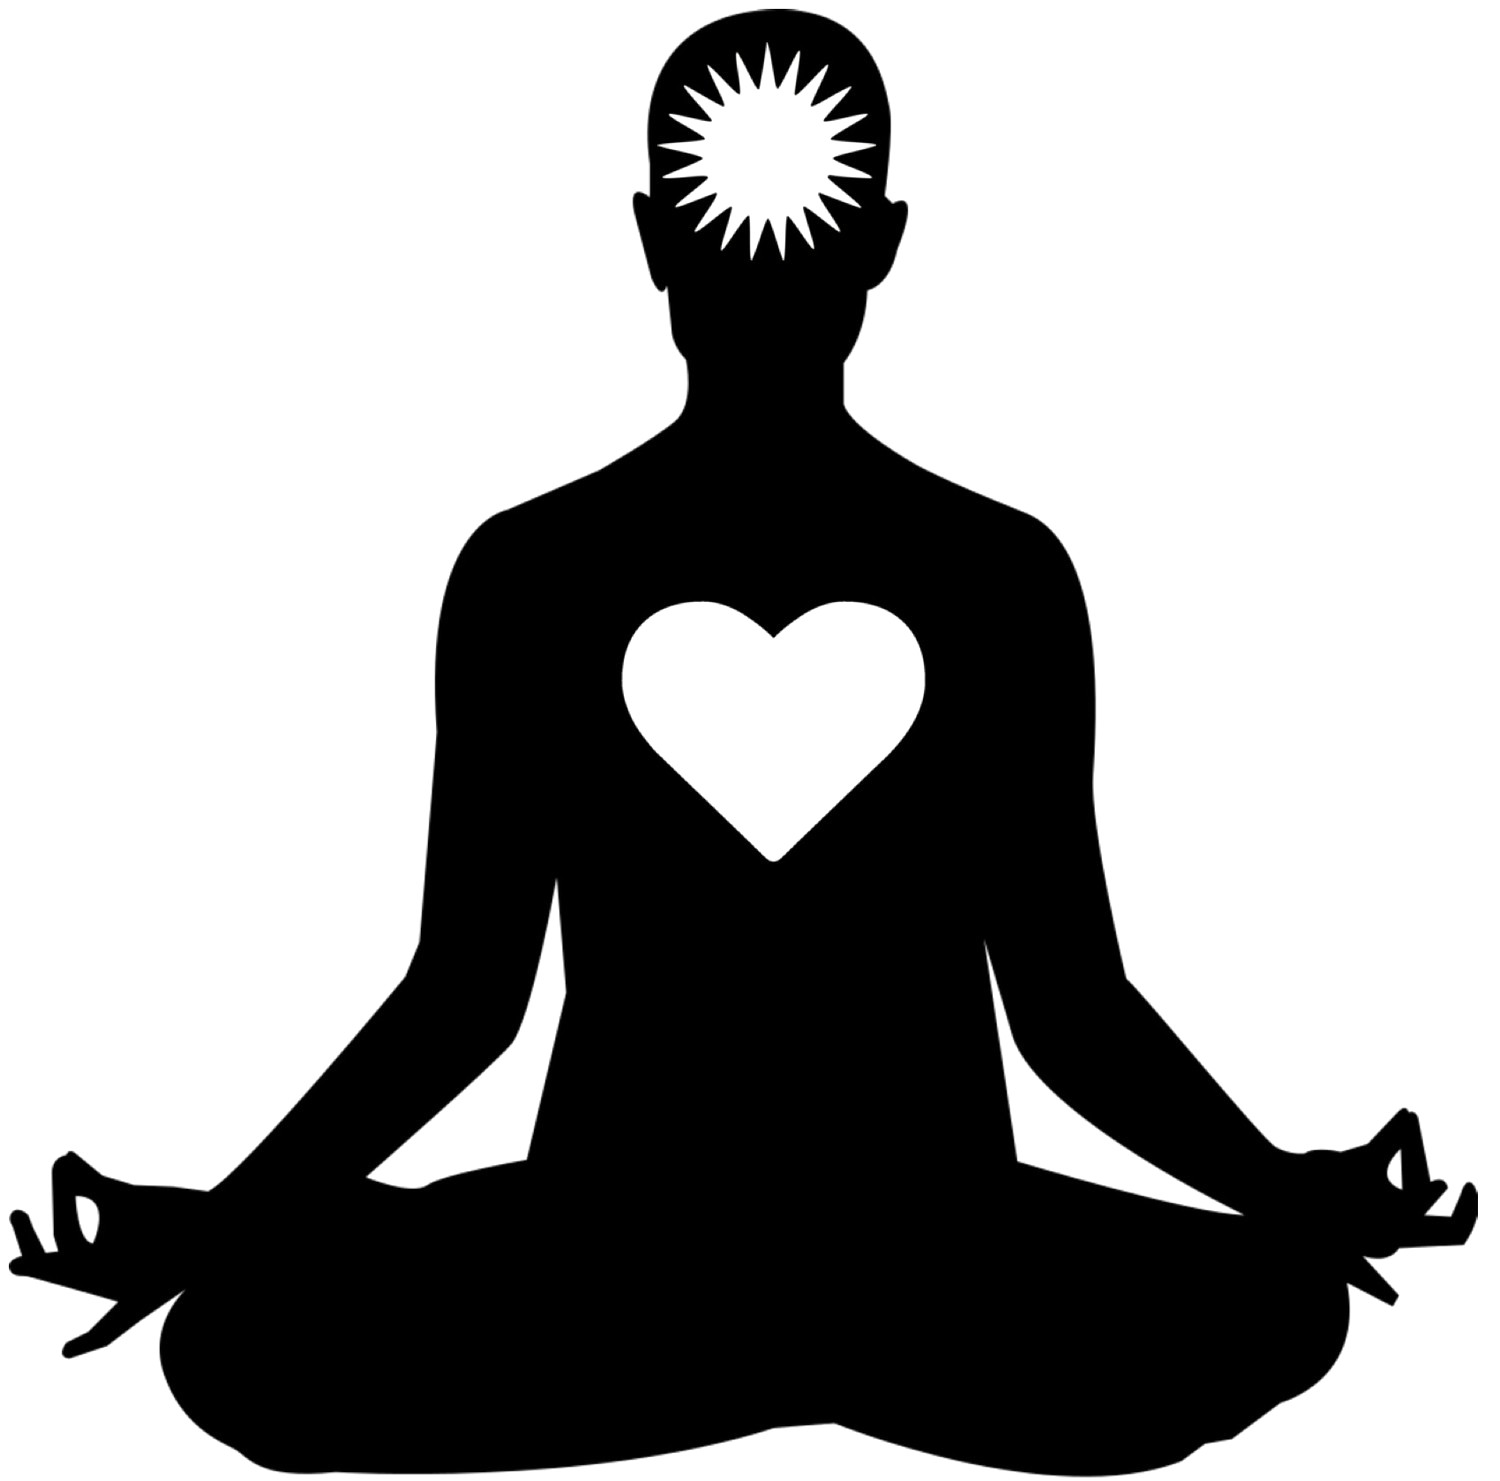 yoga-clipart-4-h-meditation-health-and-wellness-10-7-15 - Bombay Room Yoga  Studio |